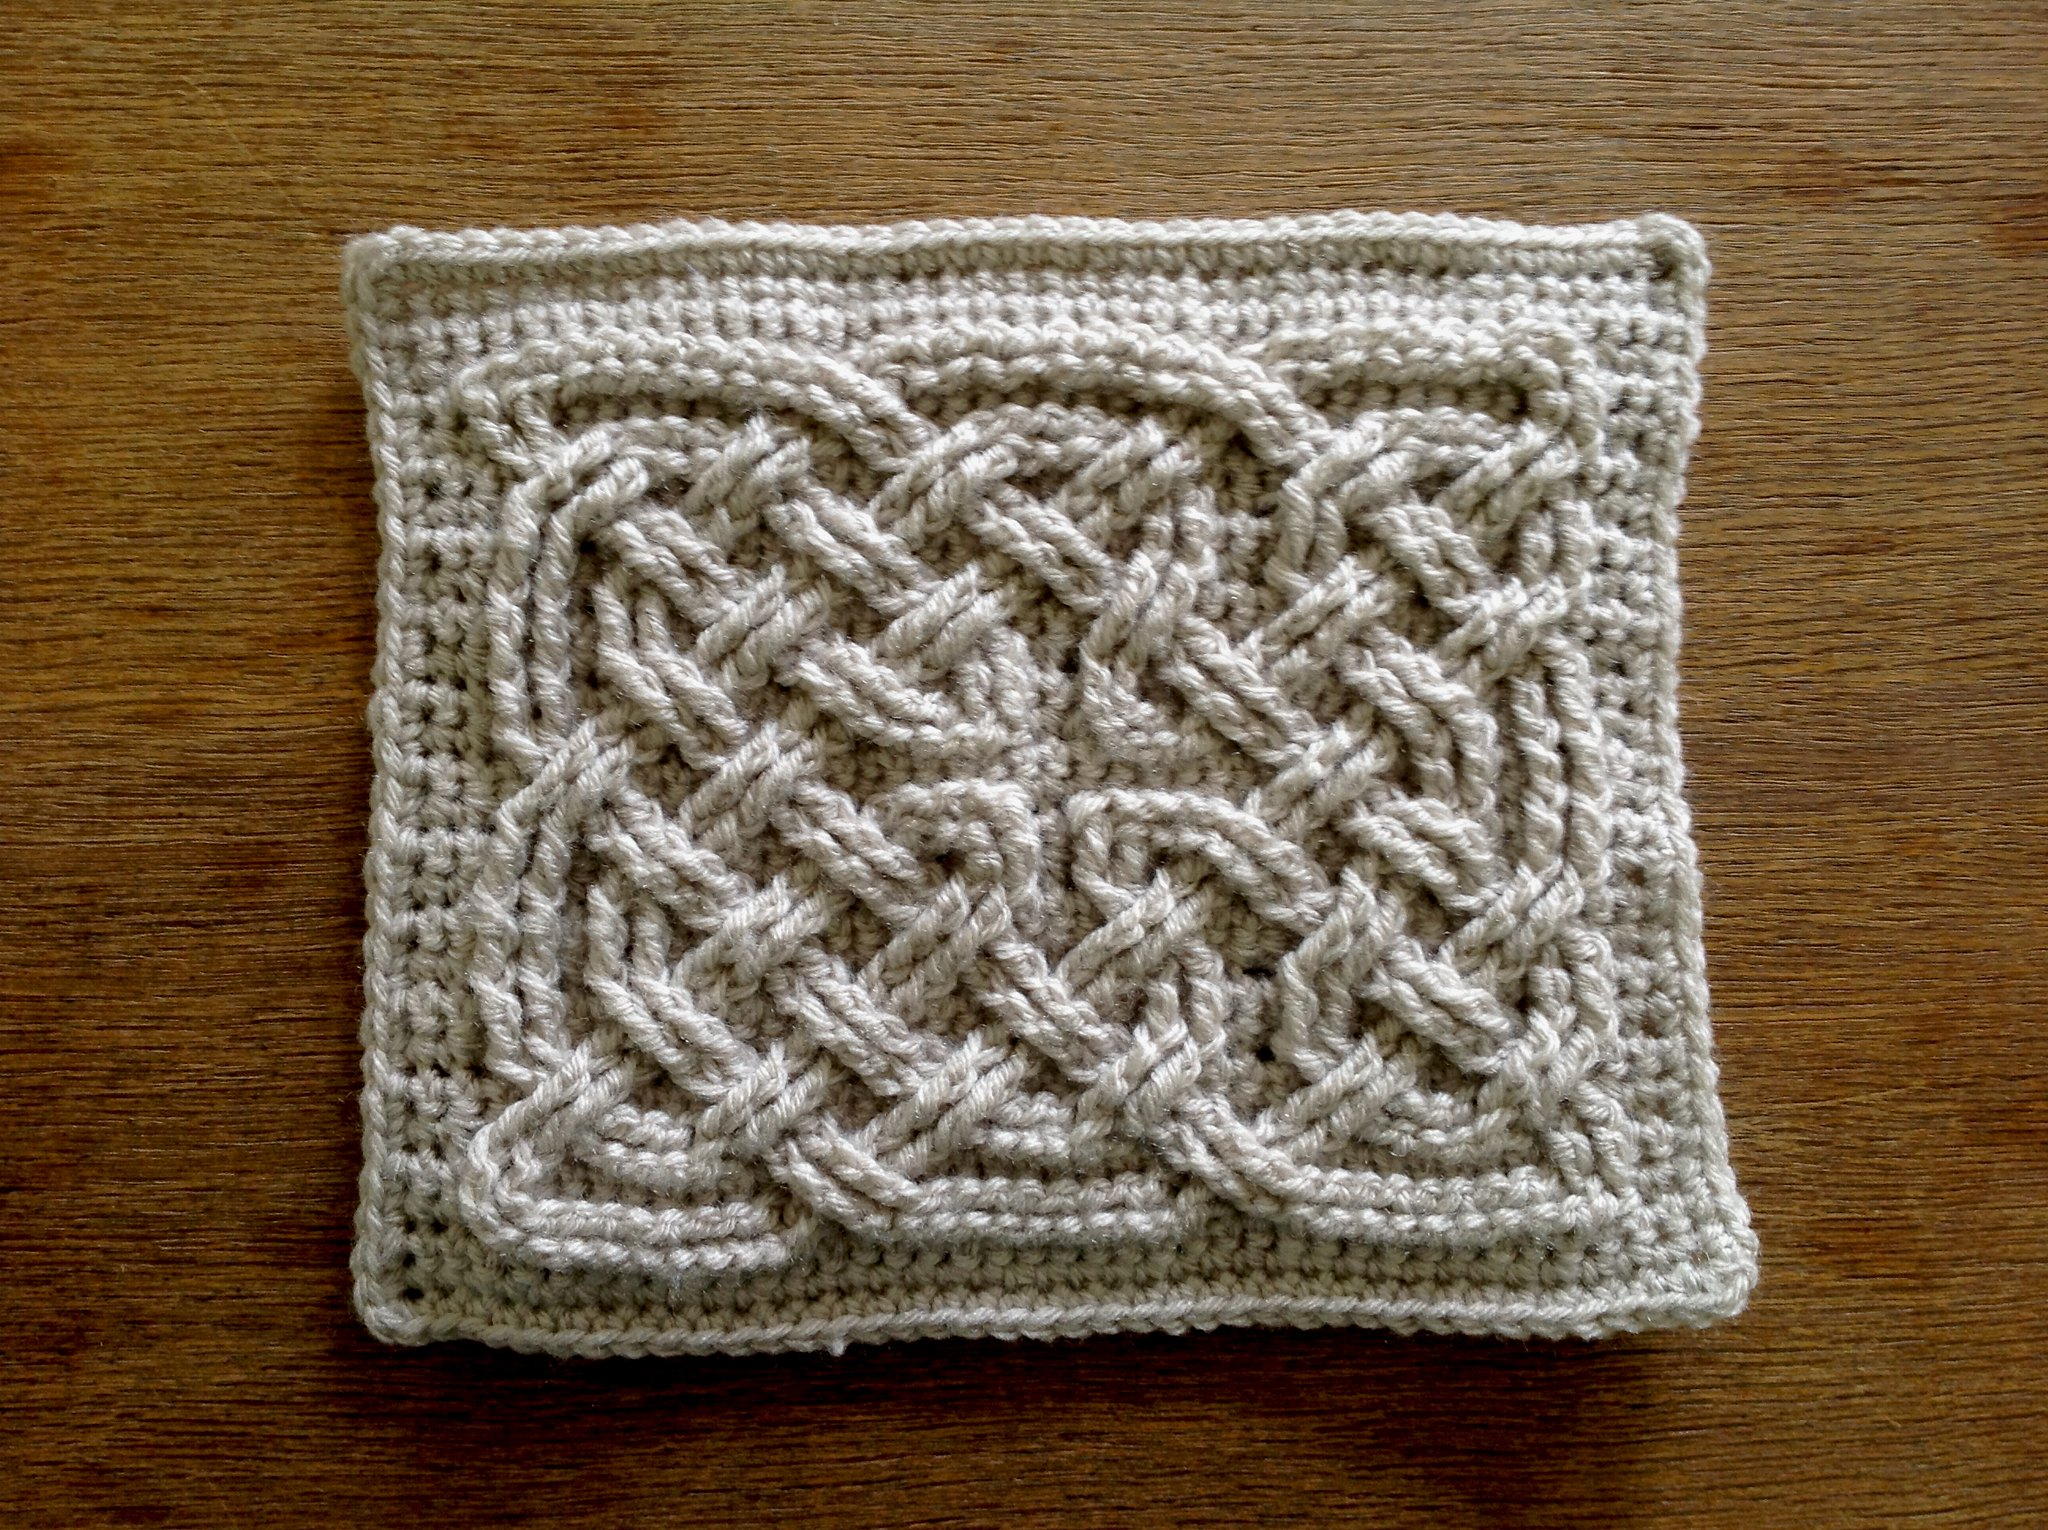 Crochet Knot : Suvis Crochet: Book of Kells - Celtic Square Knot